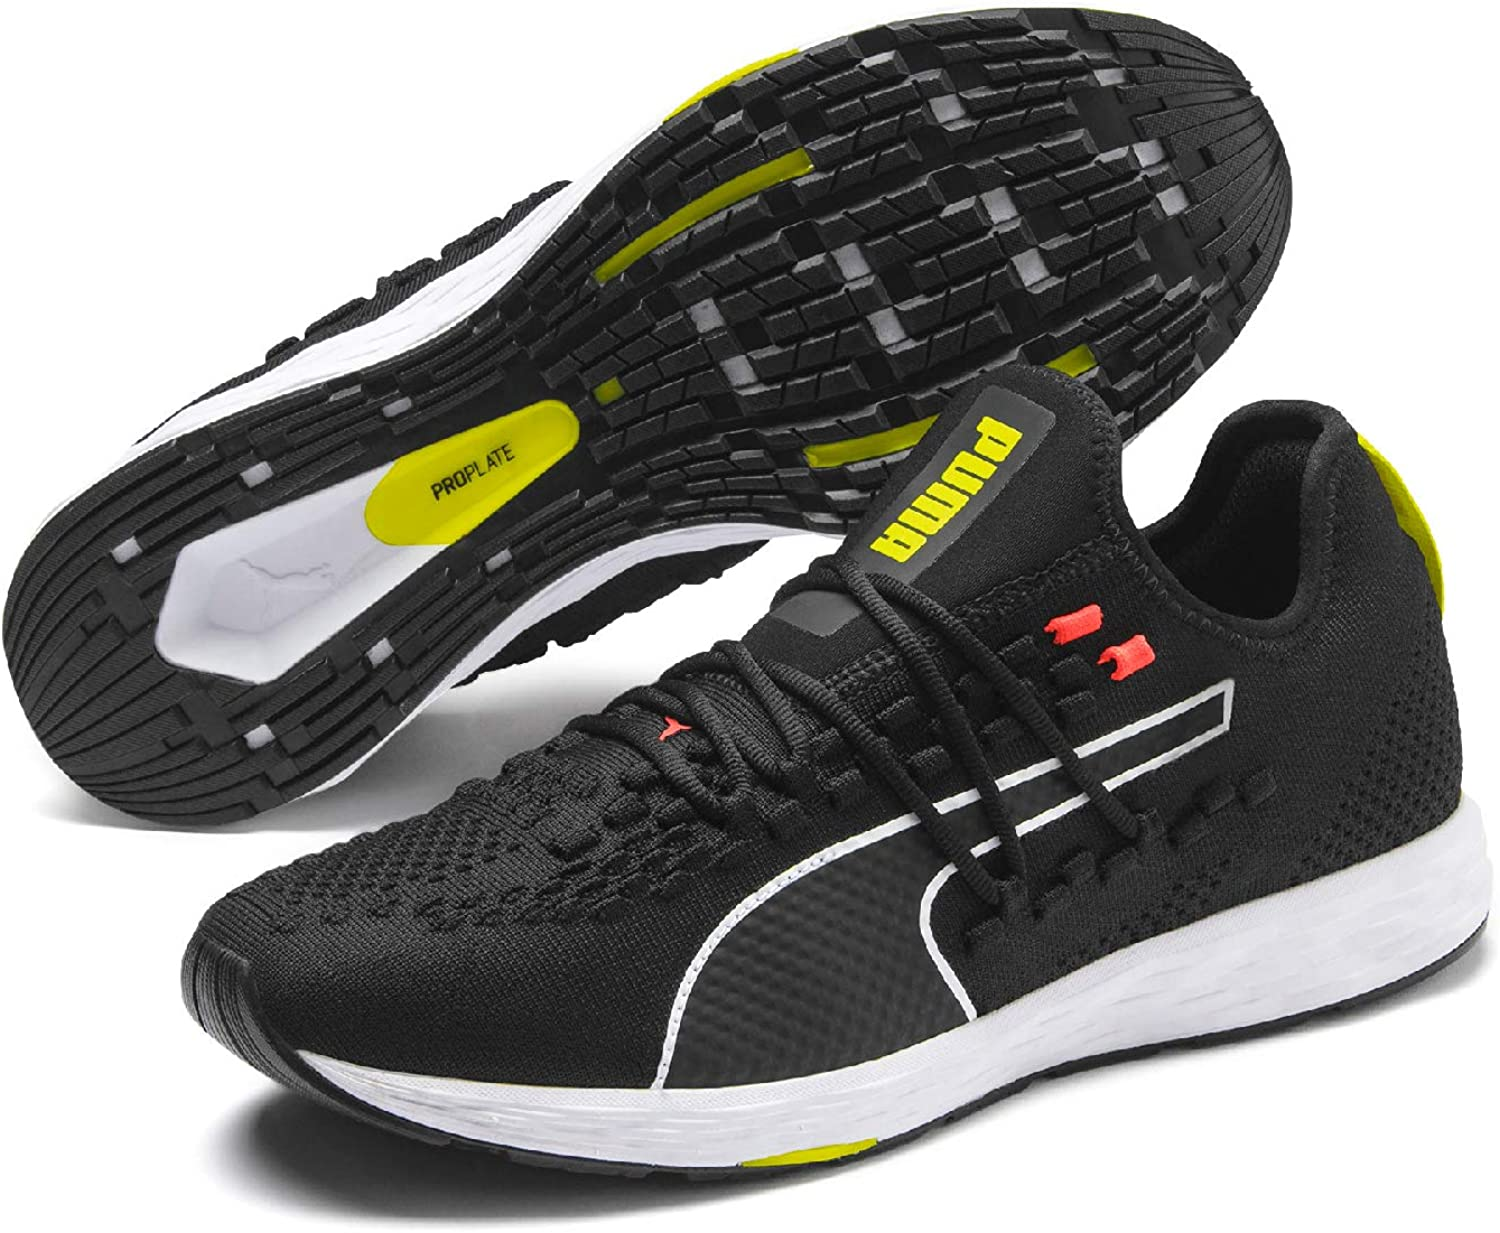 Puma Speed 300 Racer - Zapatillas de running unisex para adultos ...